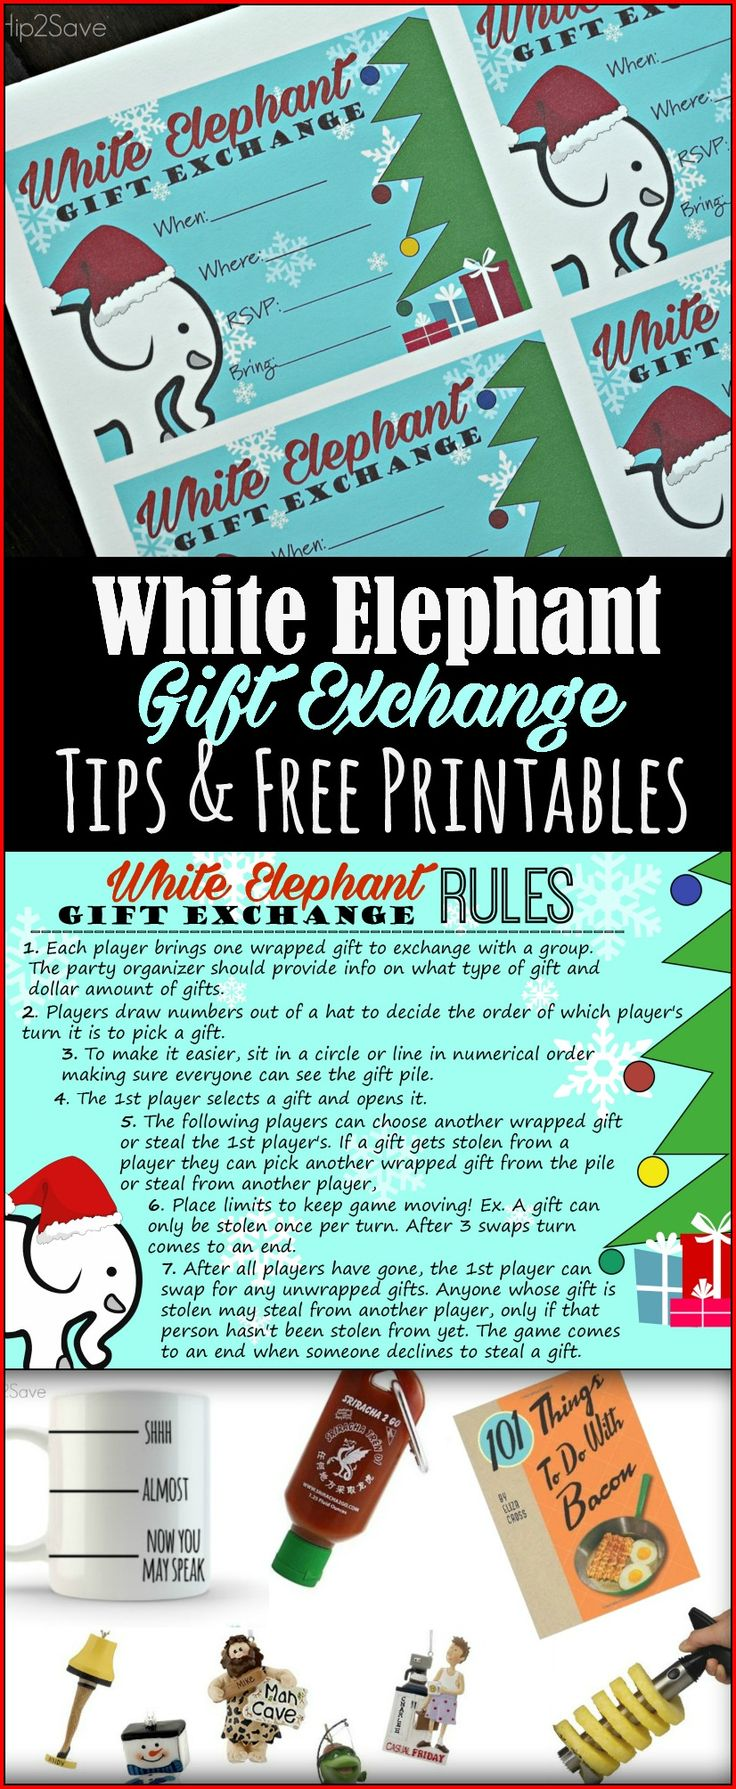 White Elephant Gift Exchange: Tips AND Free Printables (Invitations & Rules) – Hip2Save